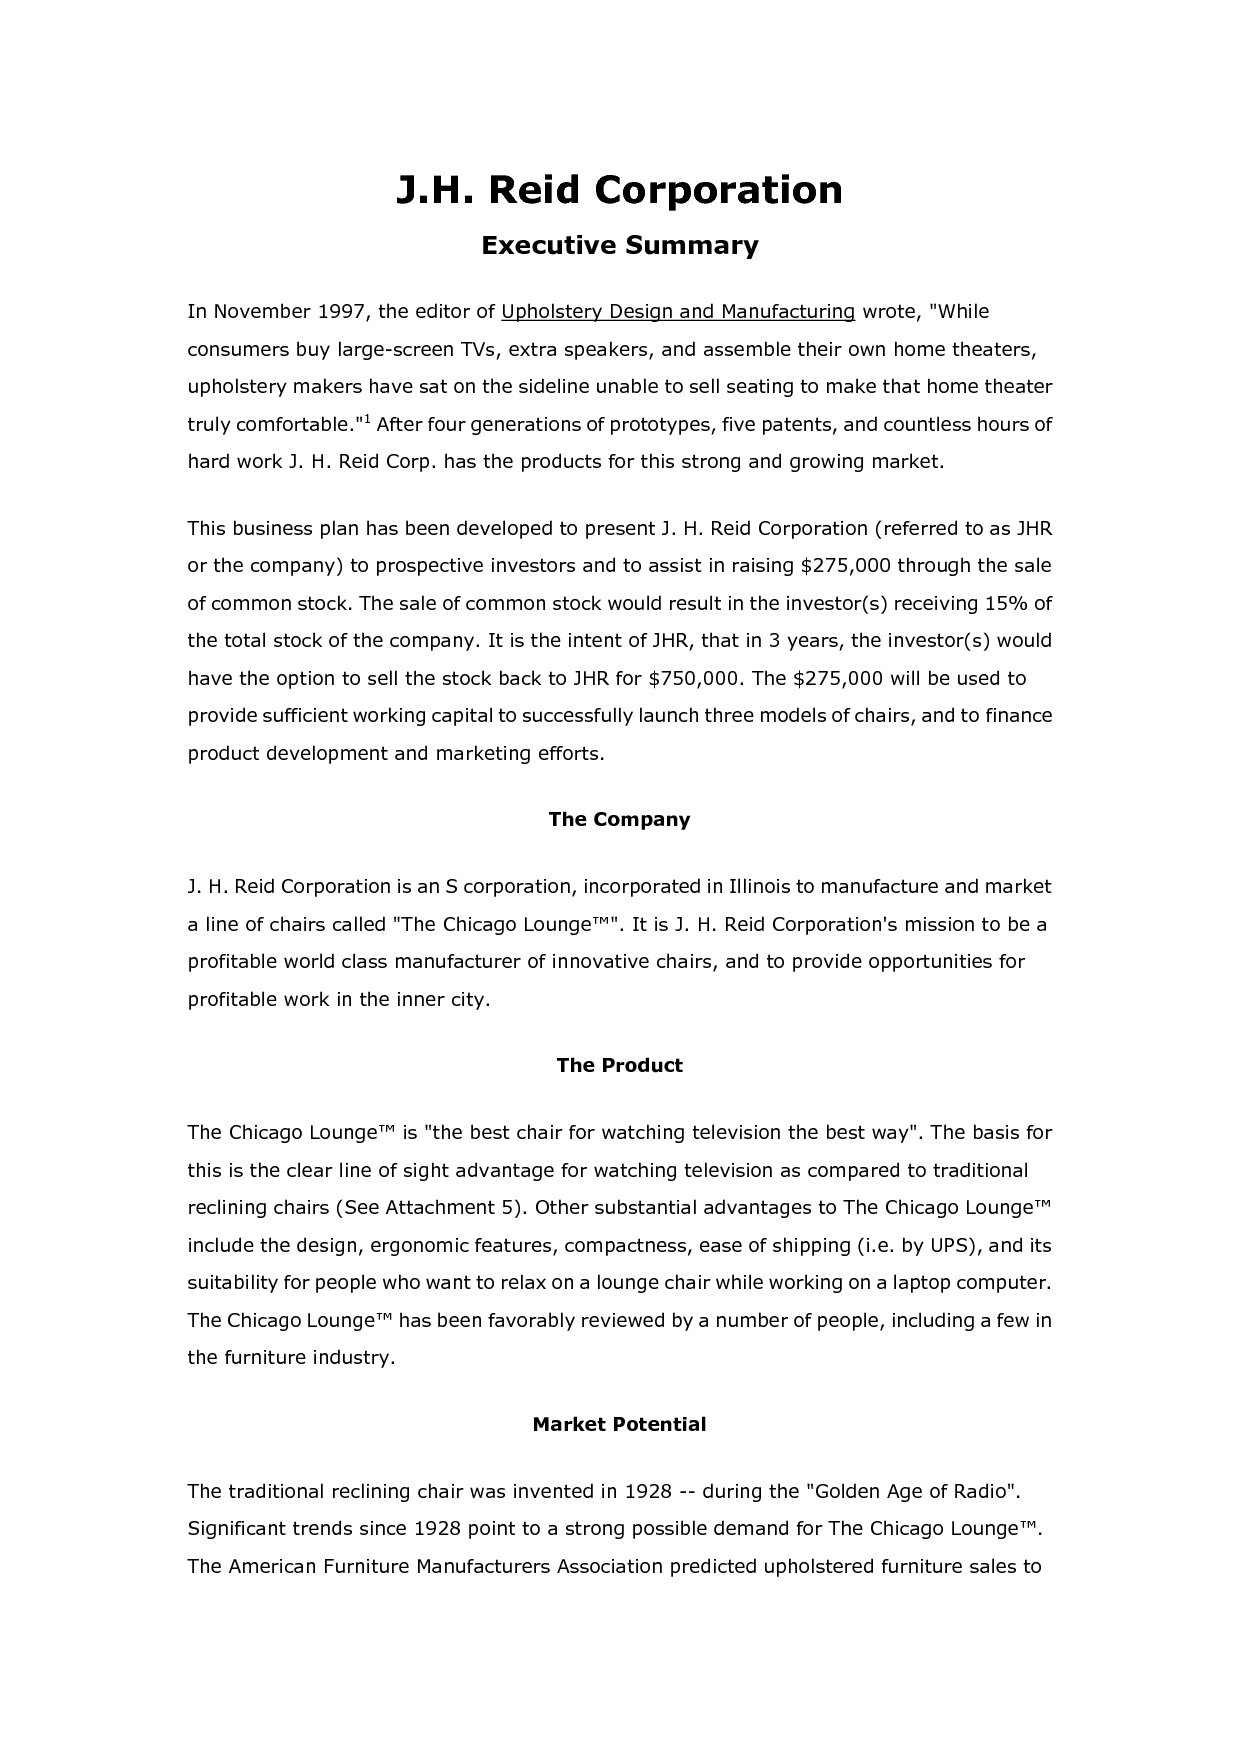 modest proposal essay ideas proposal essays how effective is modest proposal essay examples essay proposal templateessay proposal template proposal proposal